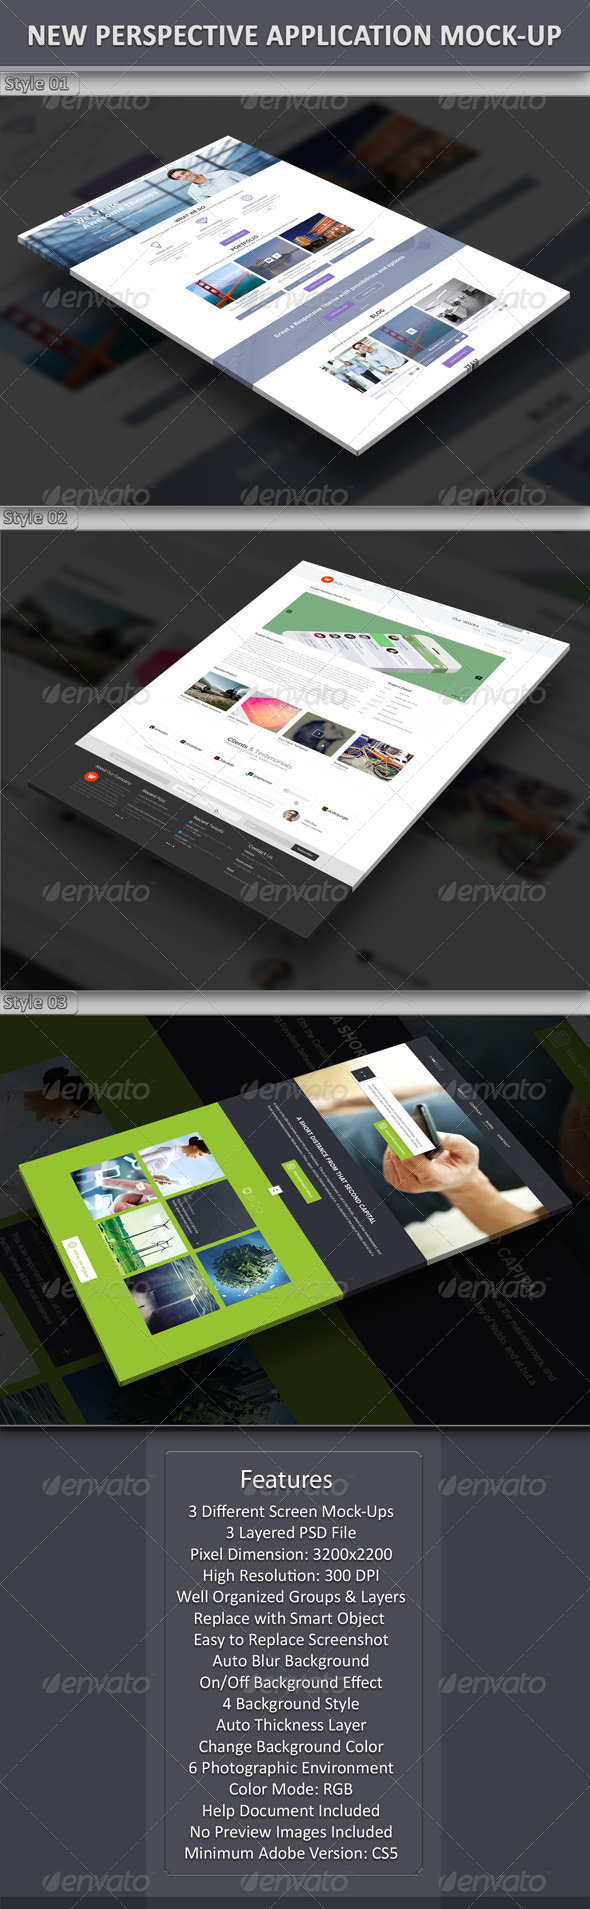 GraphicRiver New Perspective Application Mock-Up 6979753